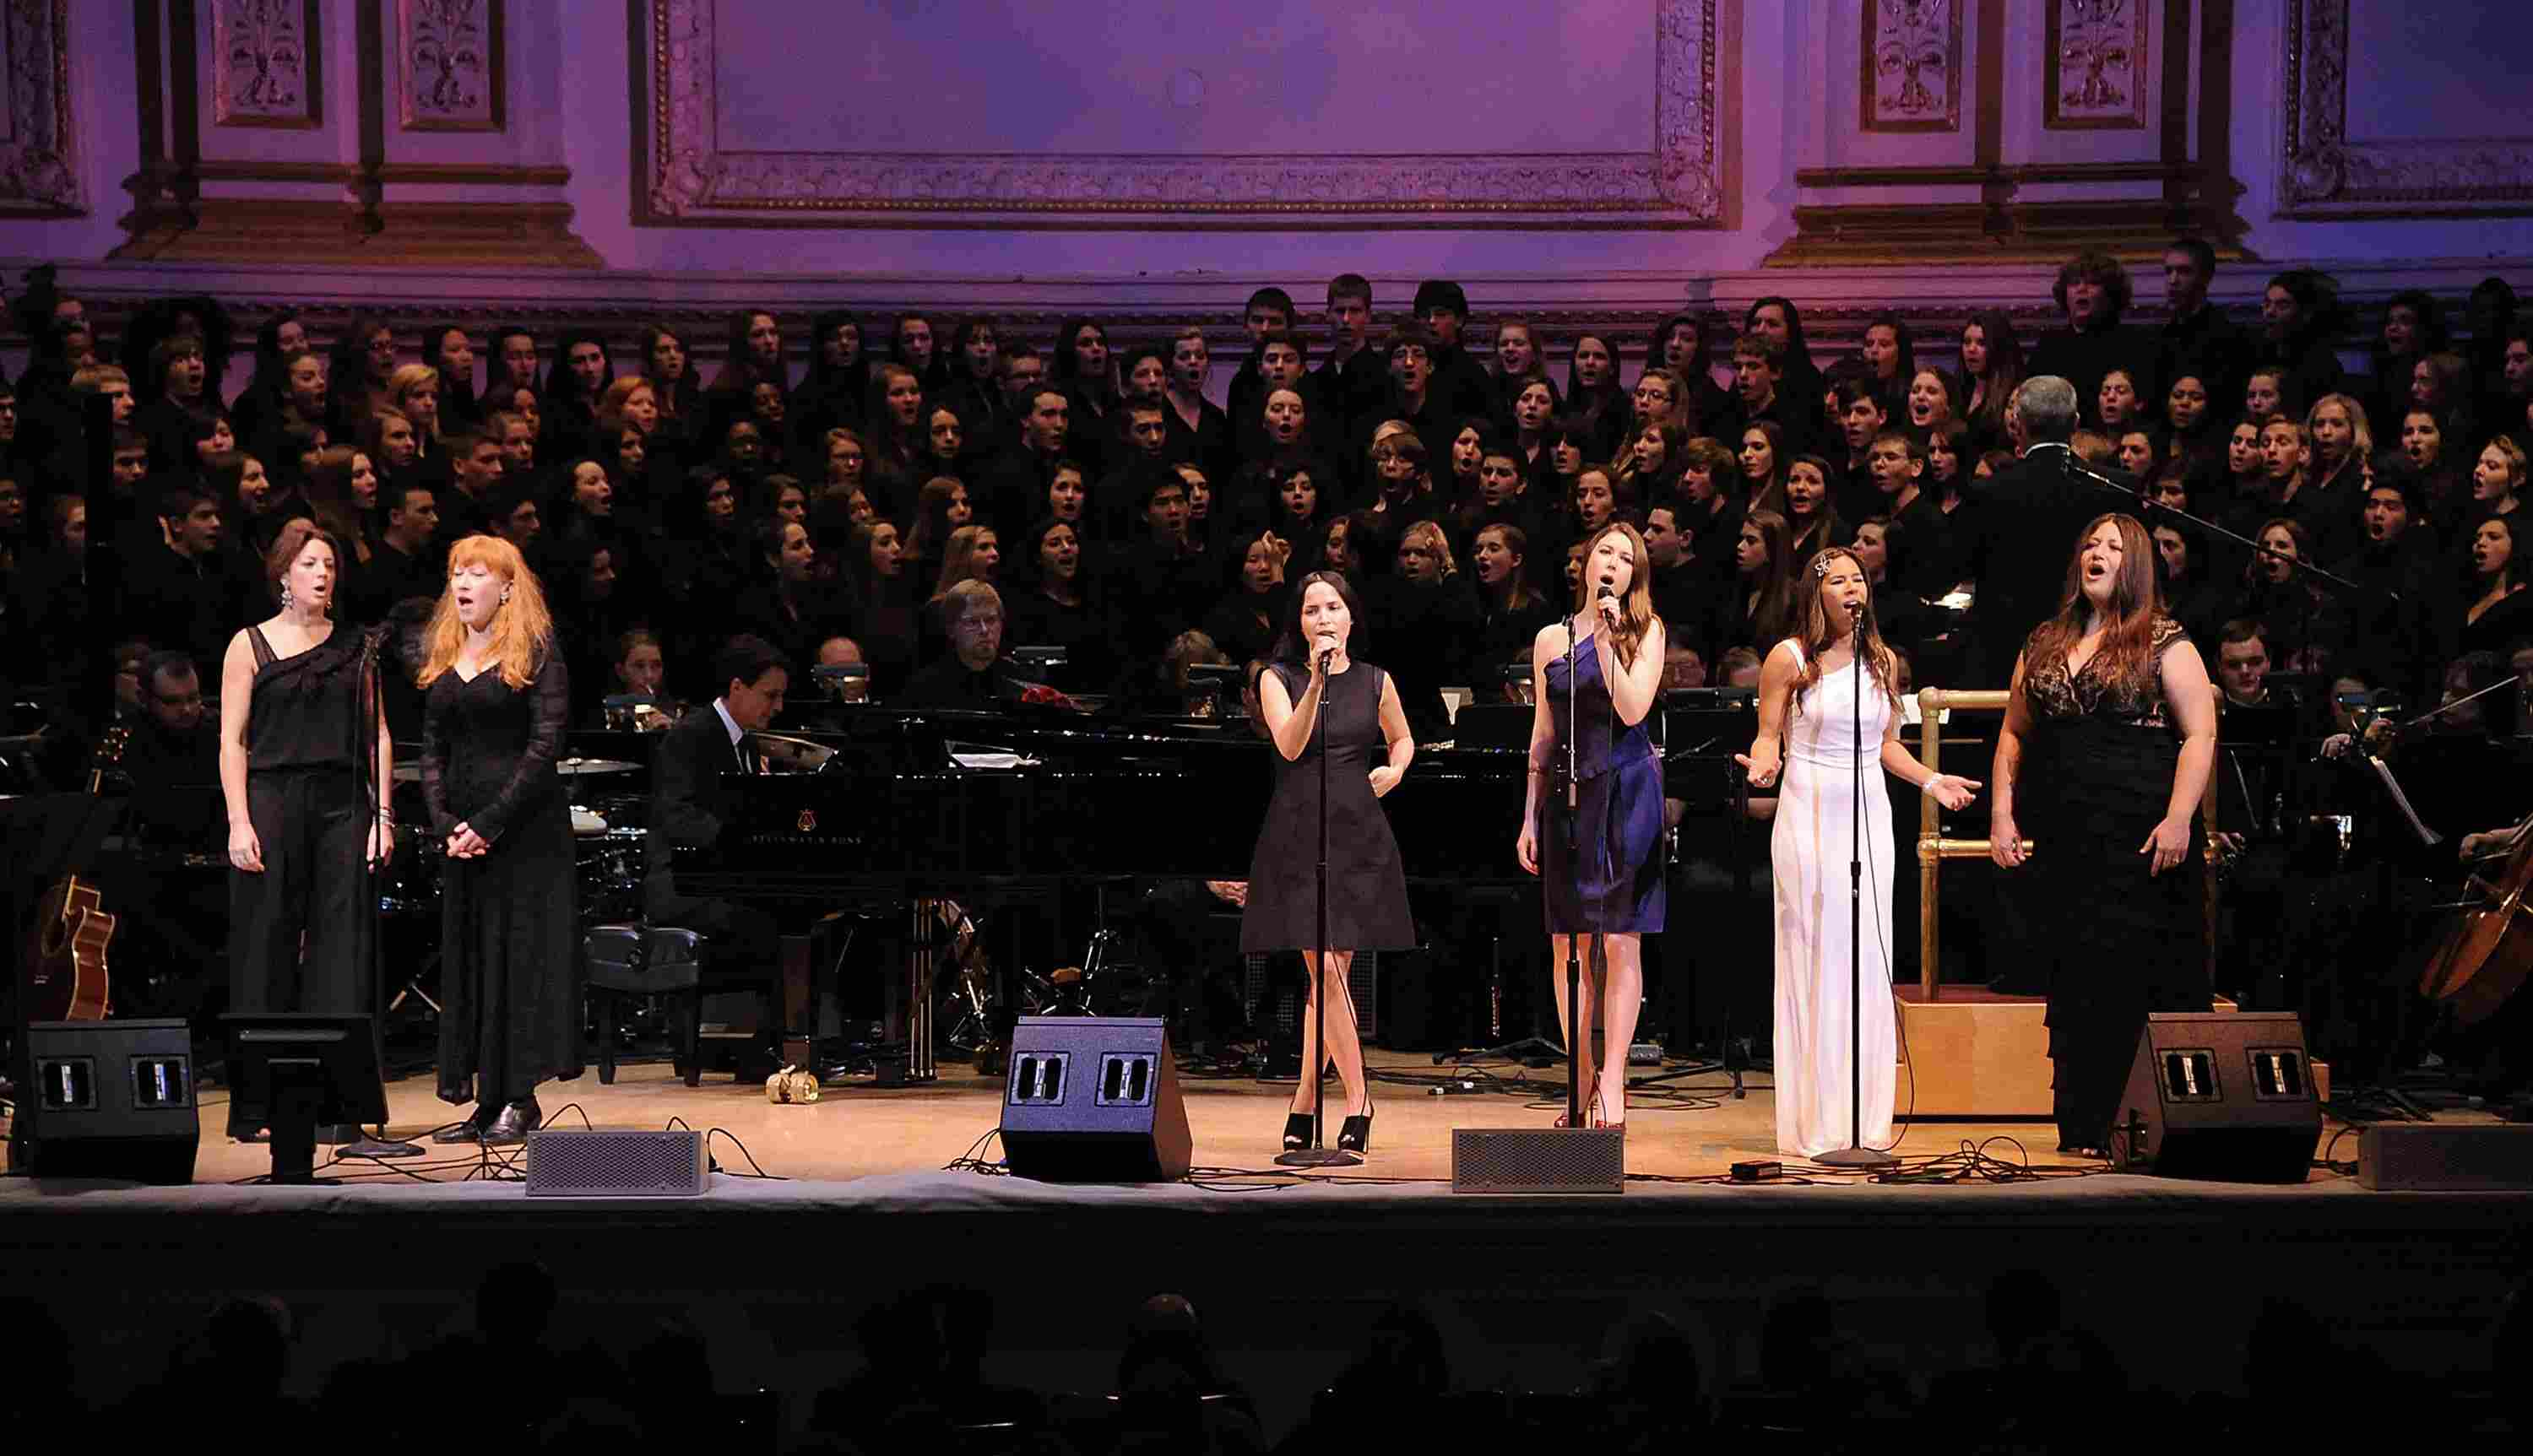 The American Christmas Carol Benefiting Golden Hat Foundation